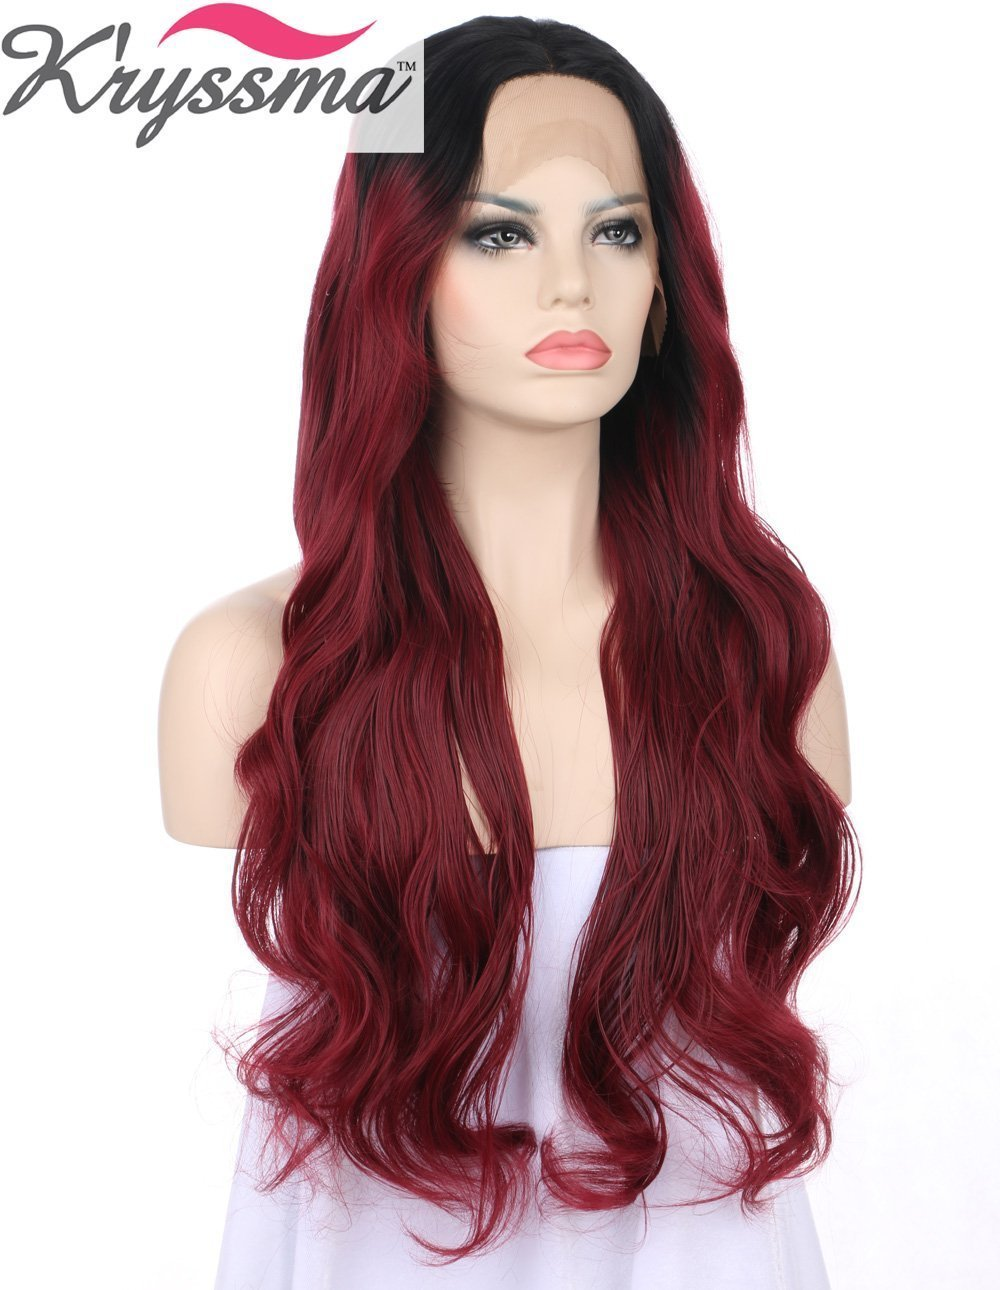 K'ryssma Ombre Wine Red Lace Front Wigs Synthetic Burgundy 2 Tones Dark Roots Long Wavy Glueless Lace Wig Replacement Full Wig For Women Heat Resistant 24 Inch For Christmas